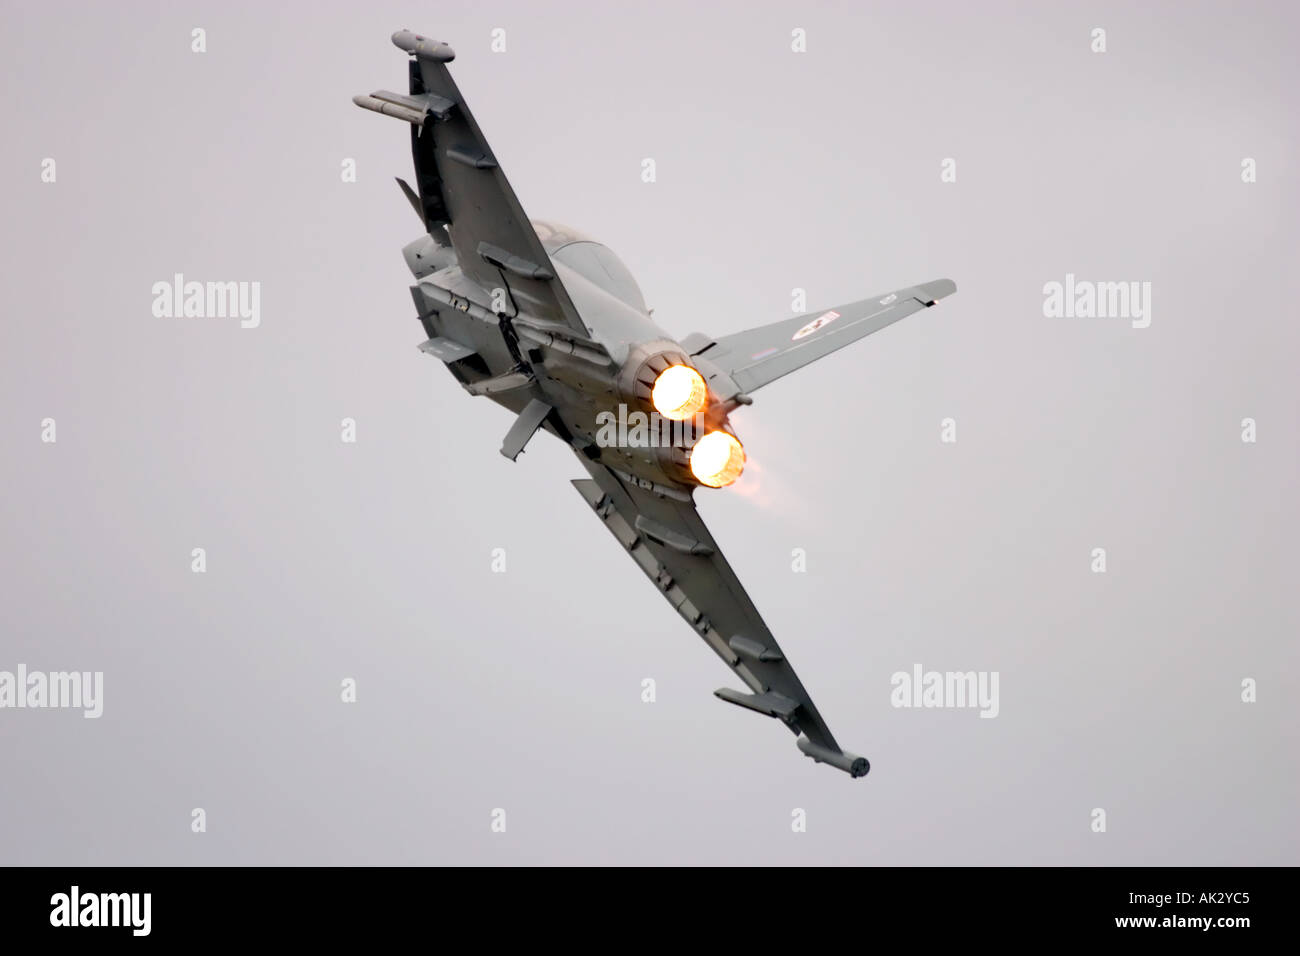 RAF Typhoon T1 29 R Squadron Eurofighter aircraft retracts landing gear wheels after taking off on full afterburner Stock Photo